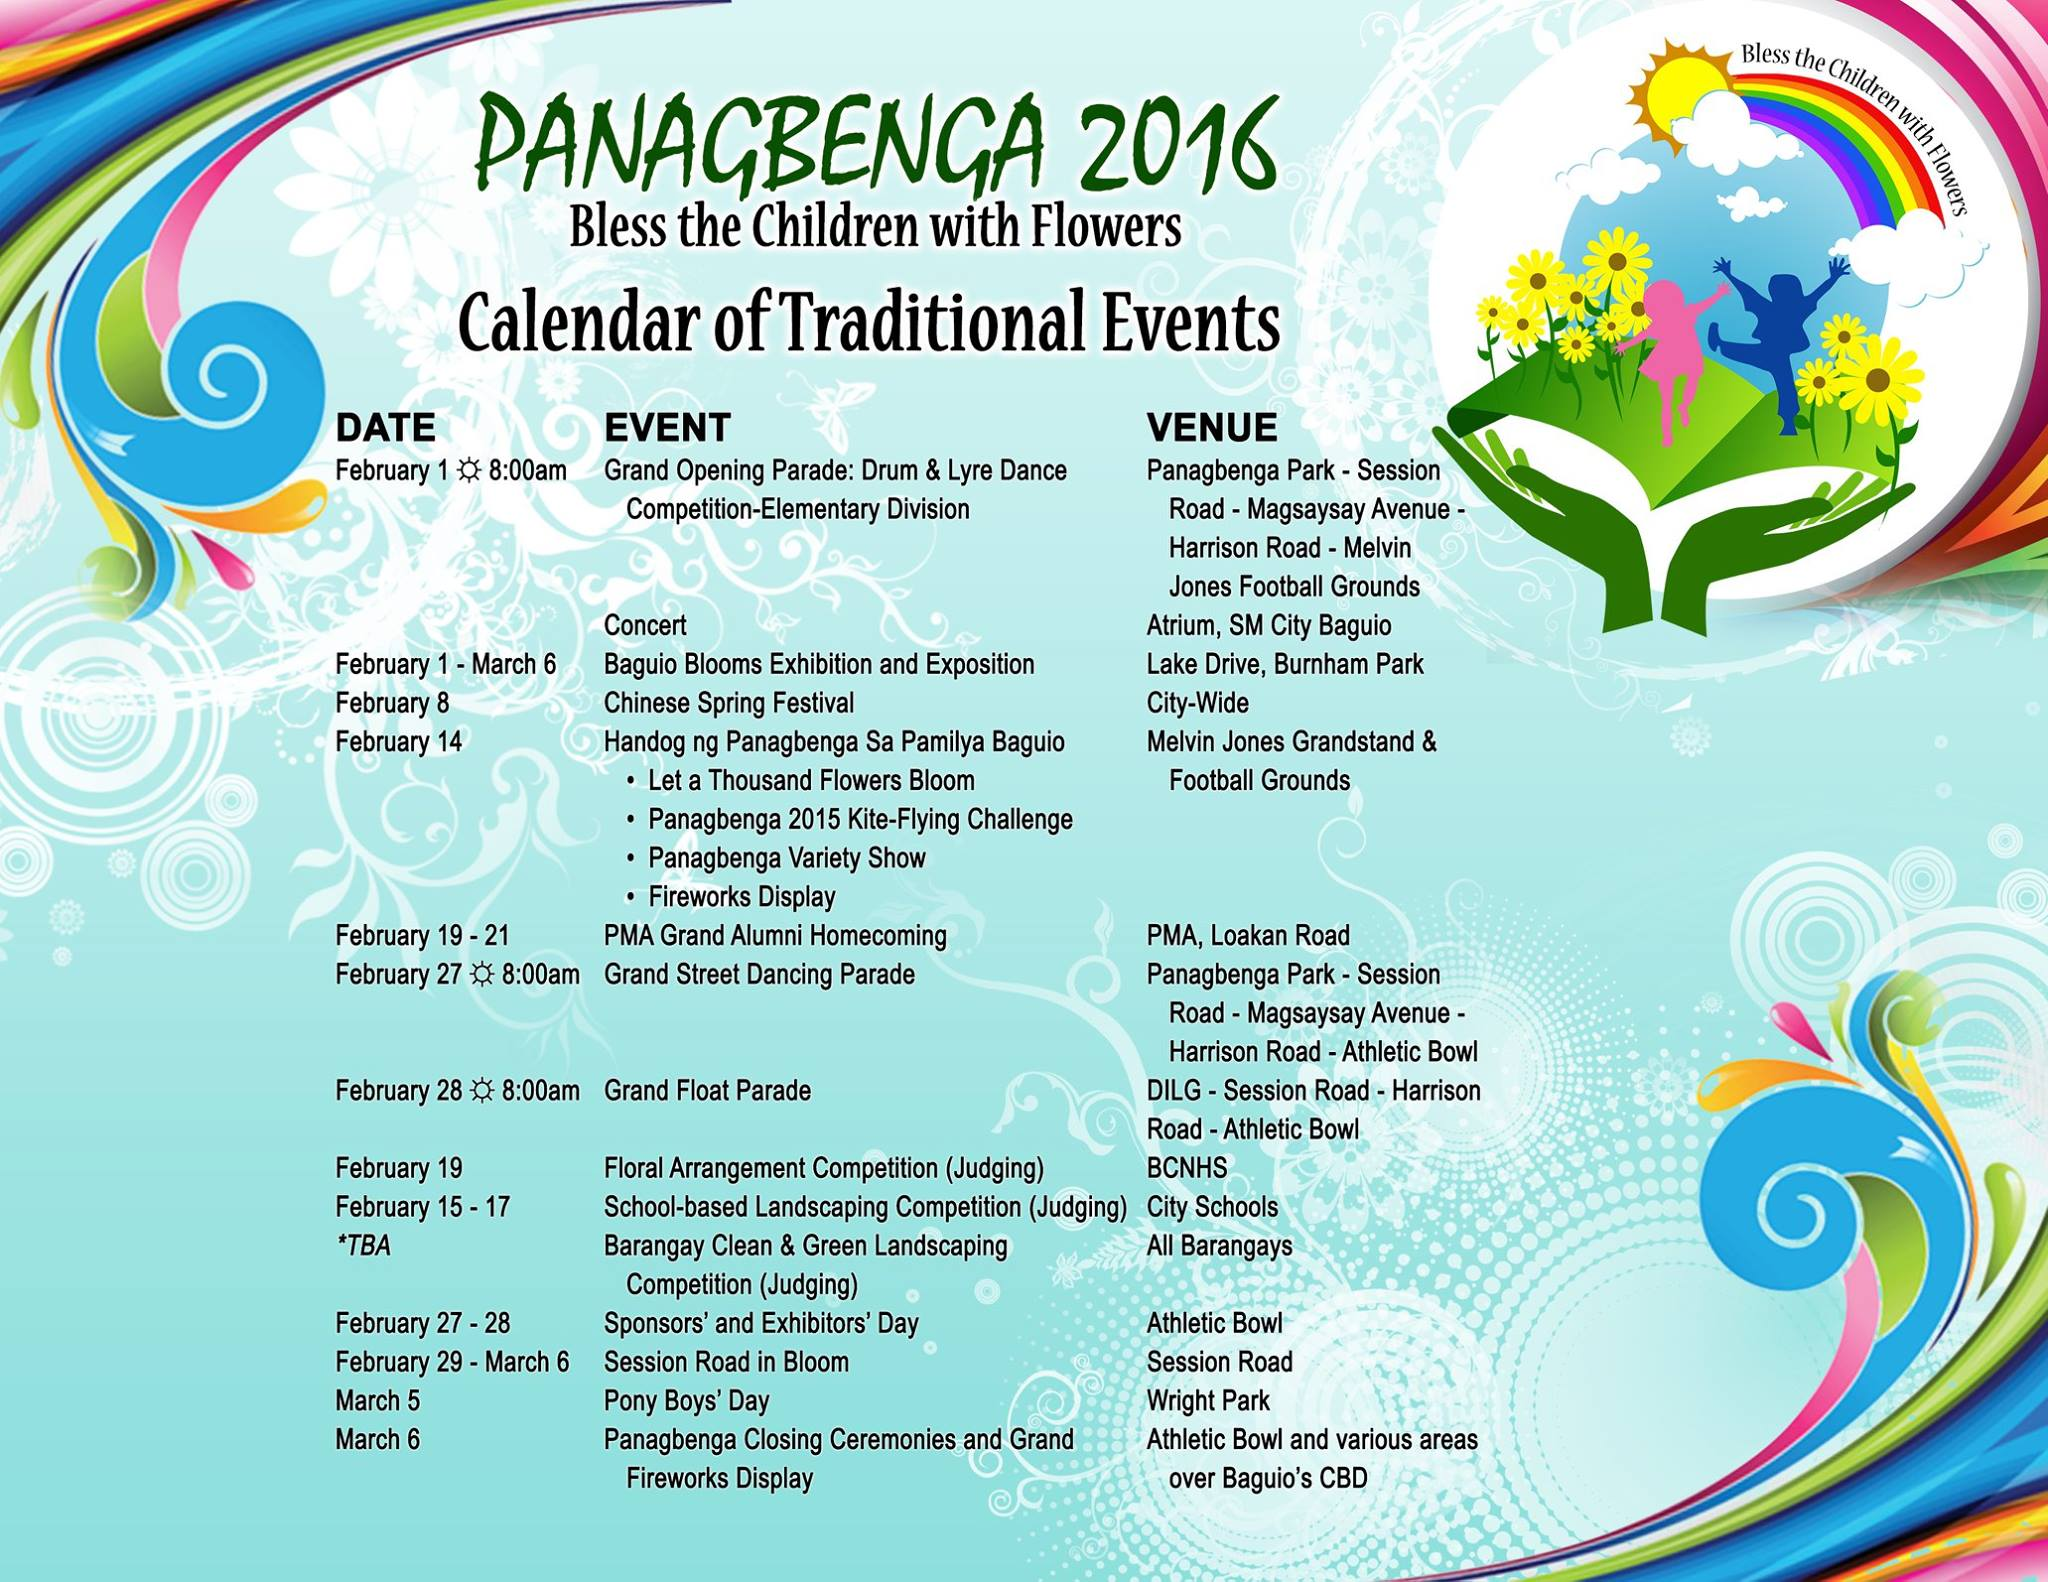 Panagbenga Festival 2016 Schedule of Events and Activities